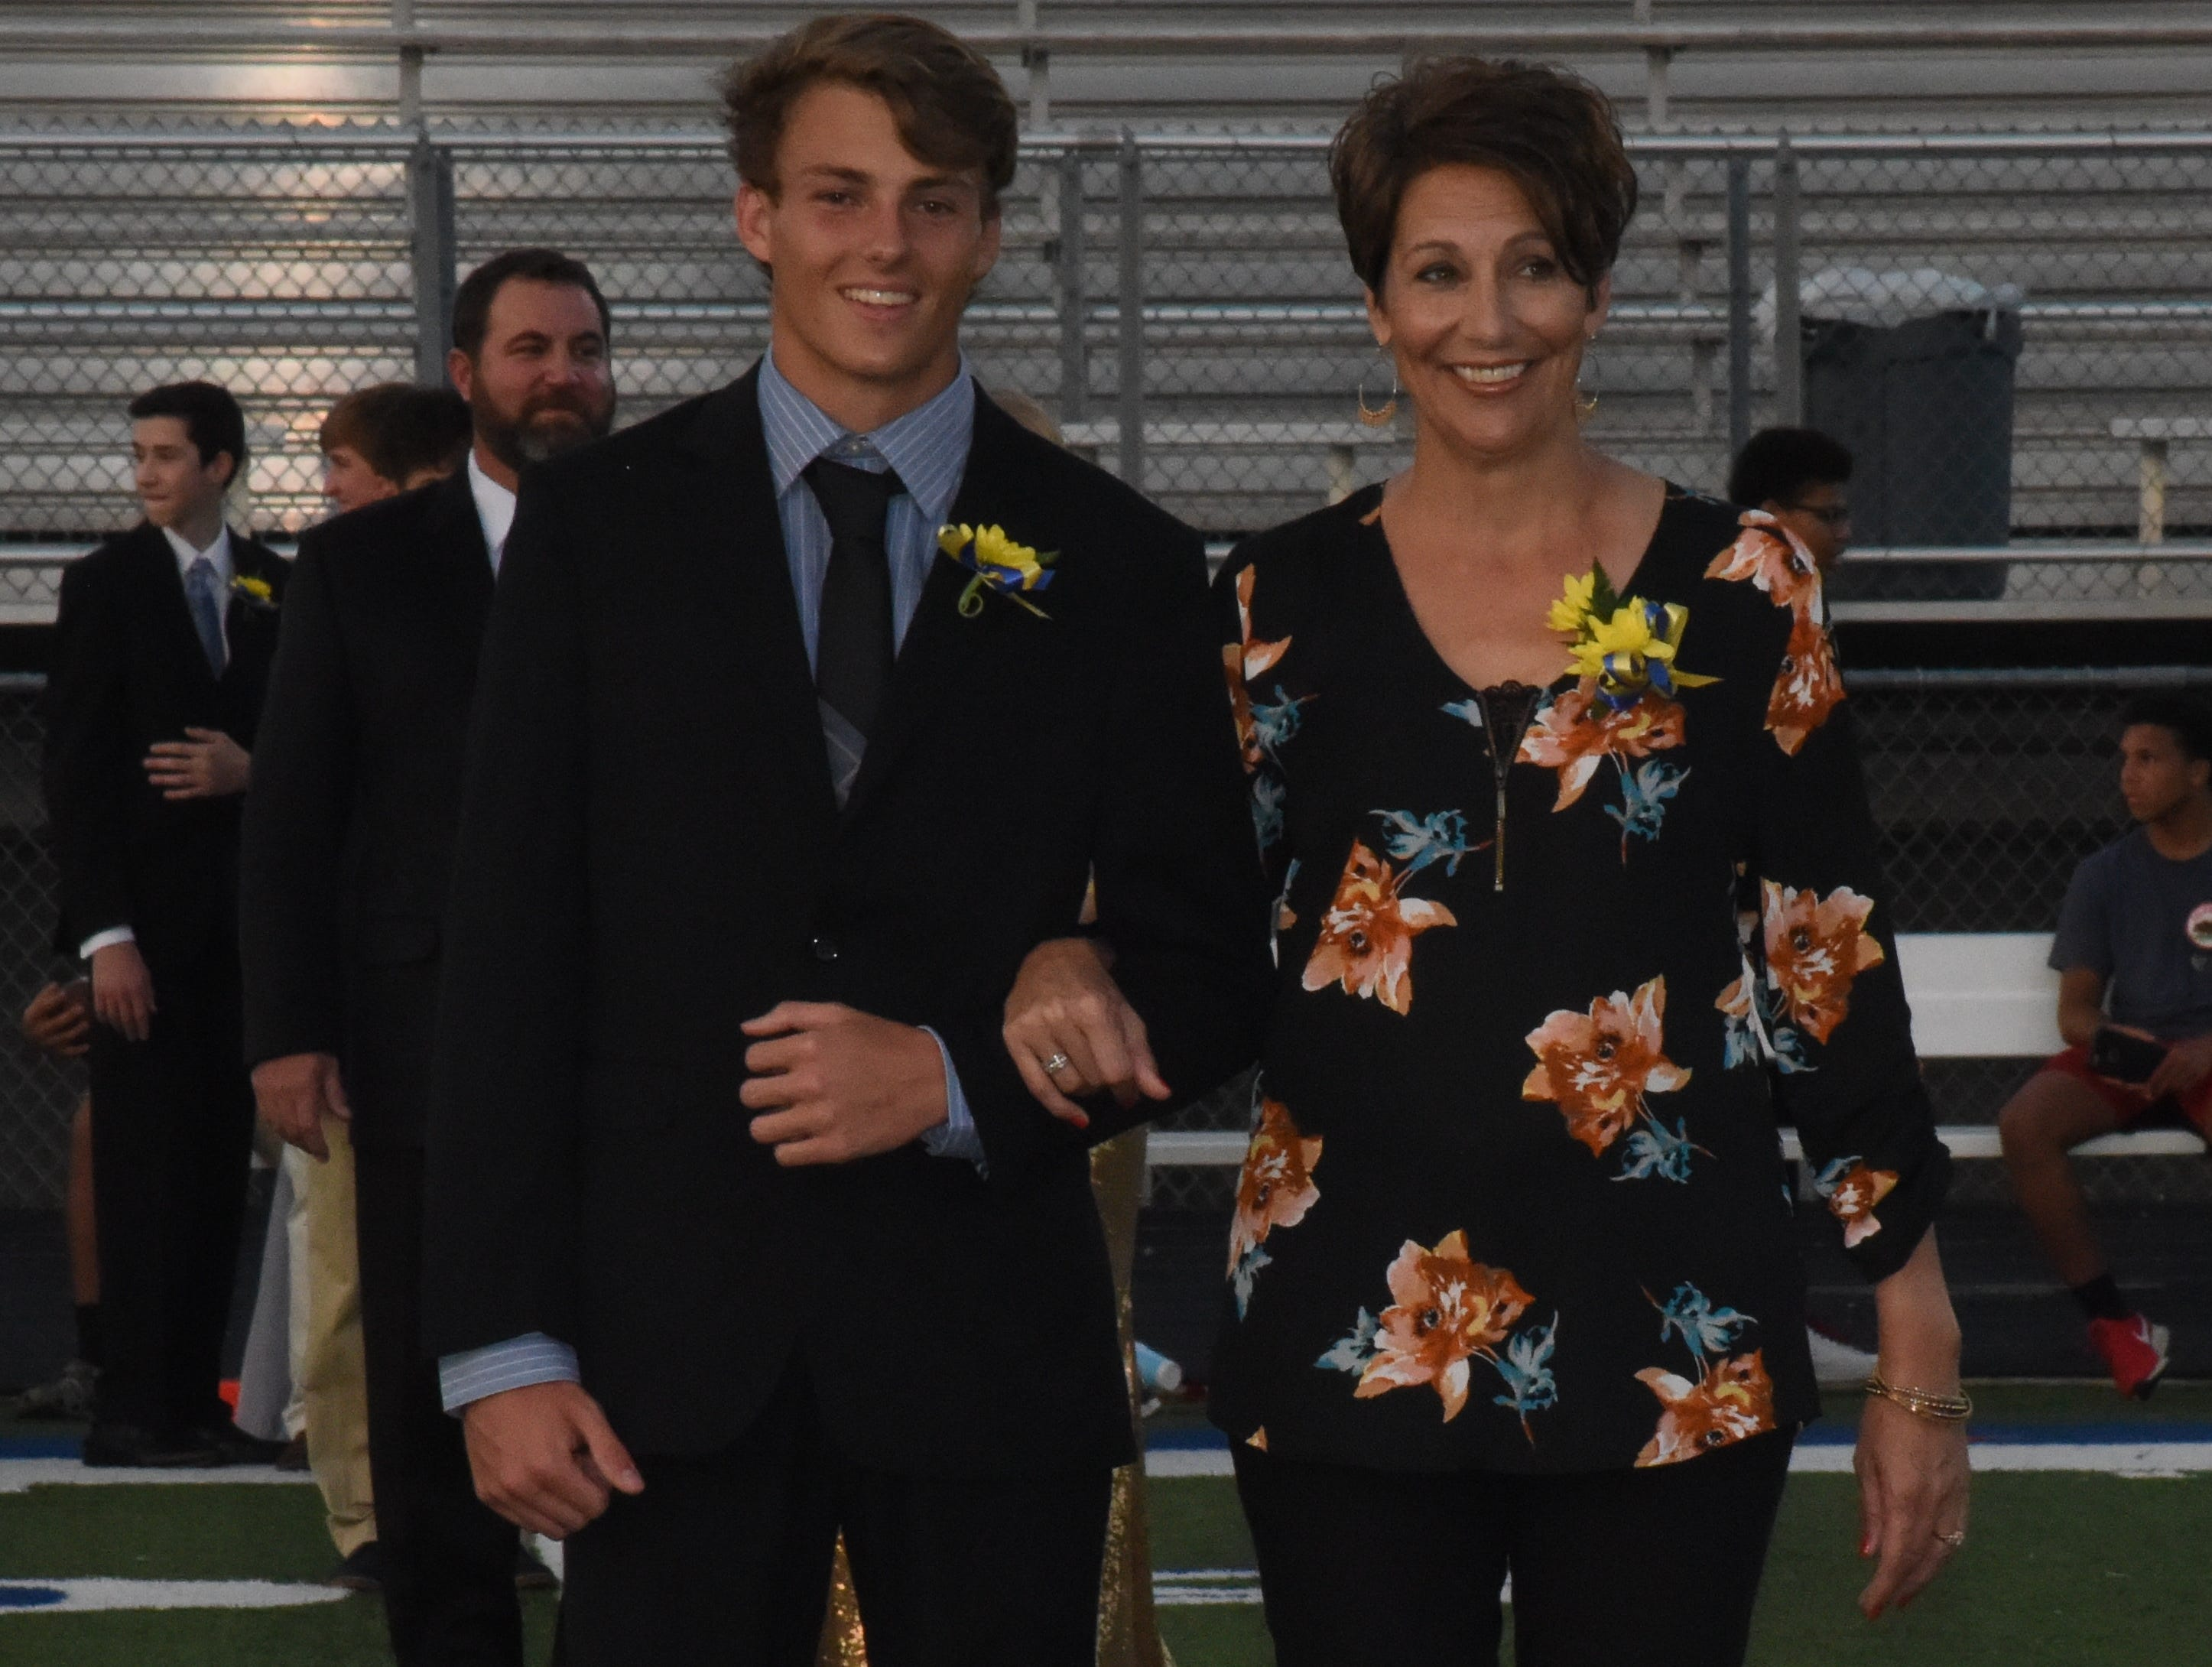 Junior knight Sam Arp and his mother, Kathy Arp.